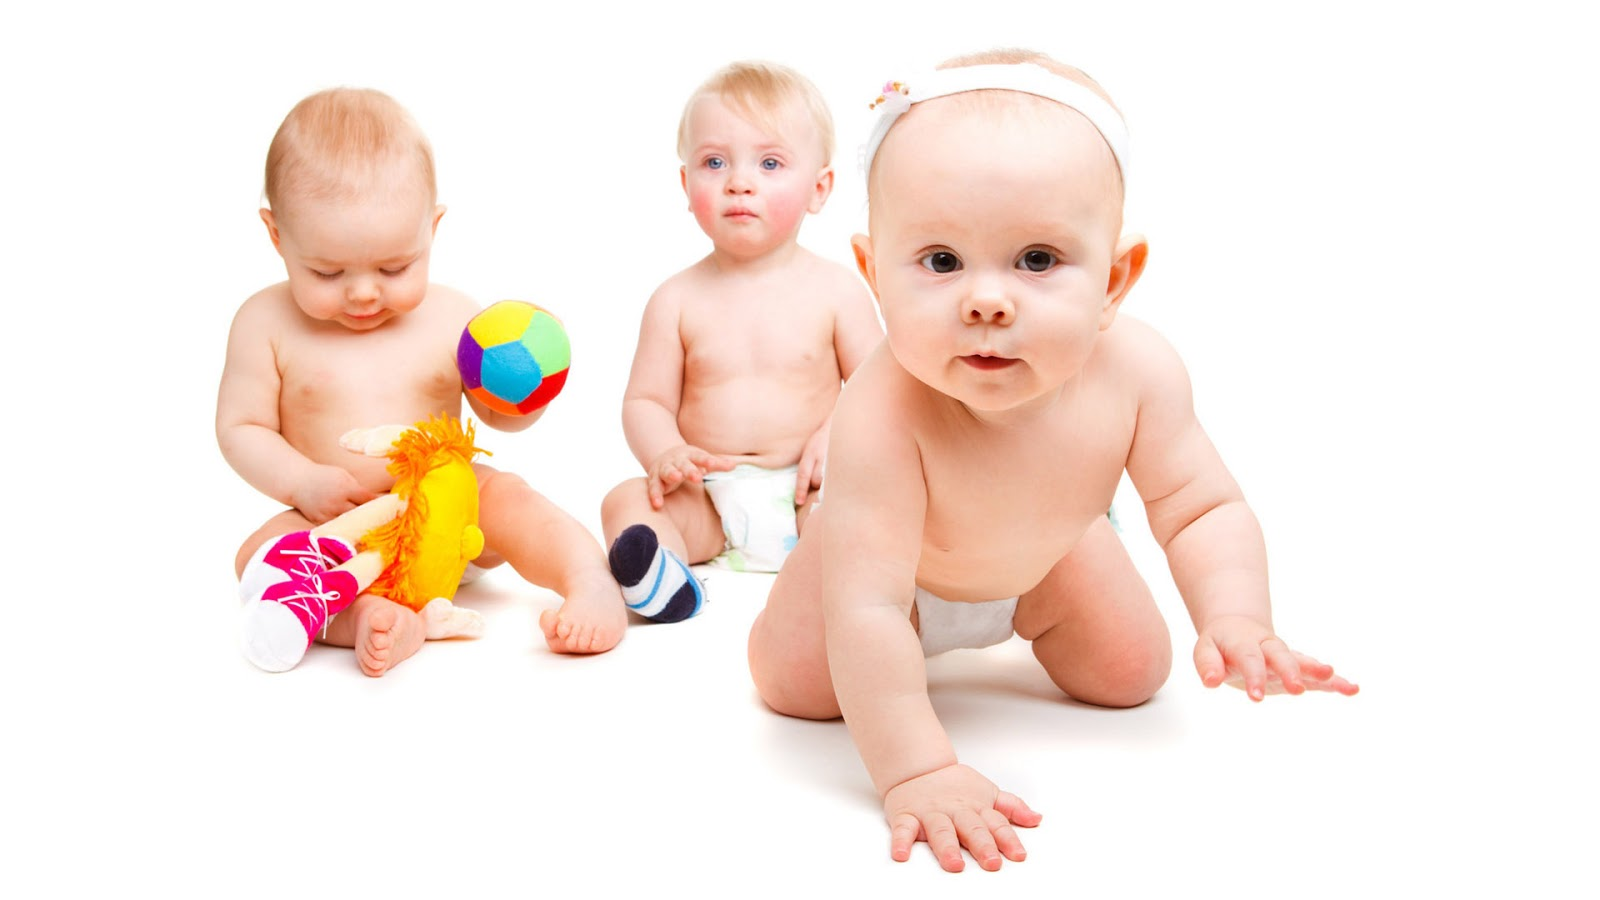 Cute Babies HD wallpapers 1920x1080 free download at hdwalle pluspng.com, Cute  Babies Full HD 1080p free download at hdwalle - Baby HD PNG